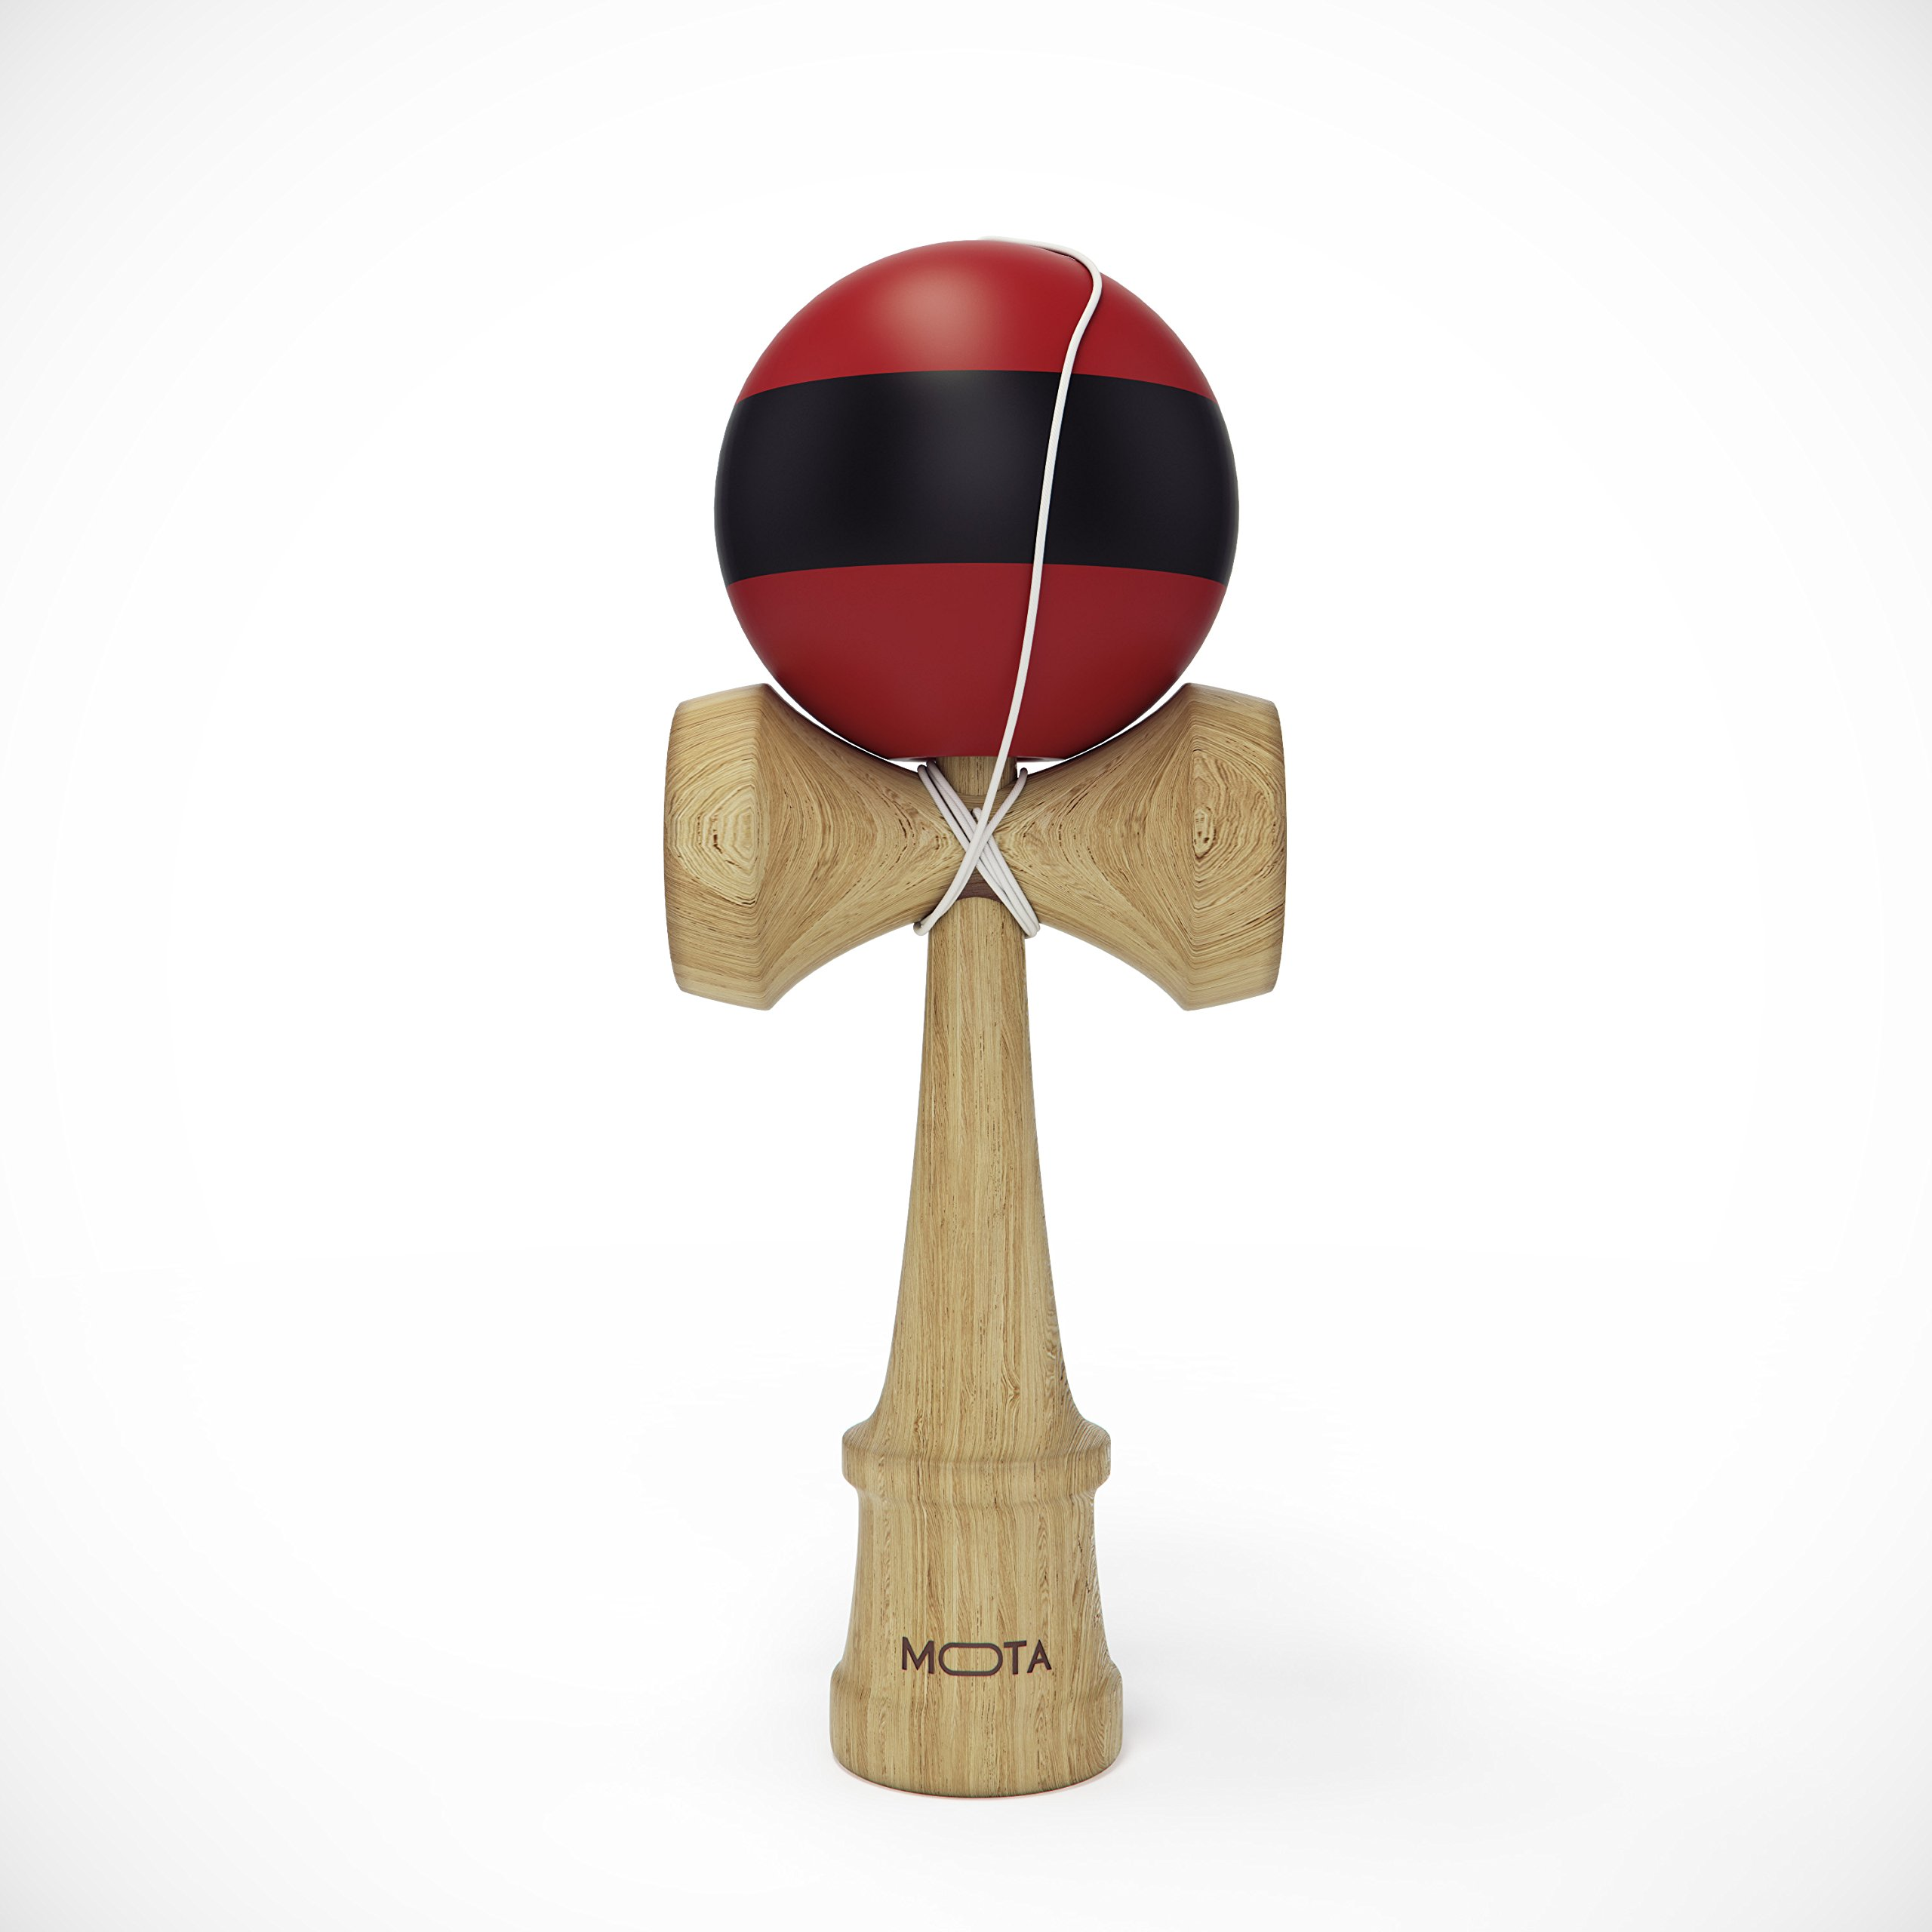 MOTA Kendama Bamboo Toy - Classic Japanese Wooden Ball and Cup Skill Game - Red